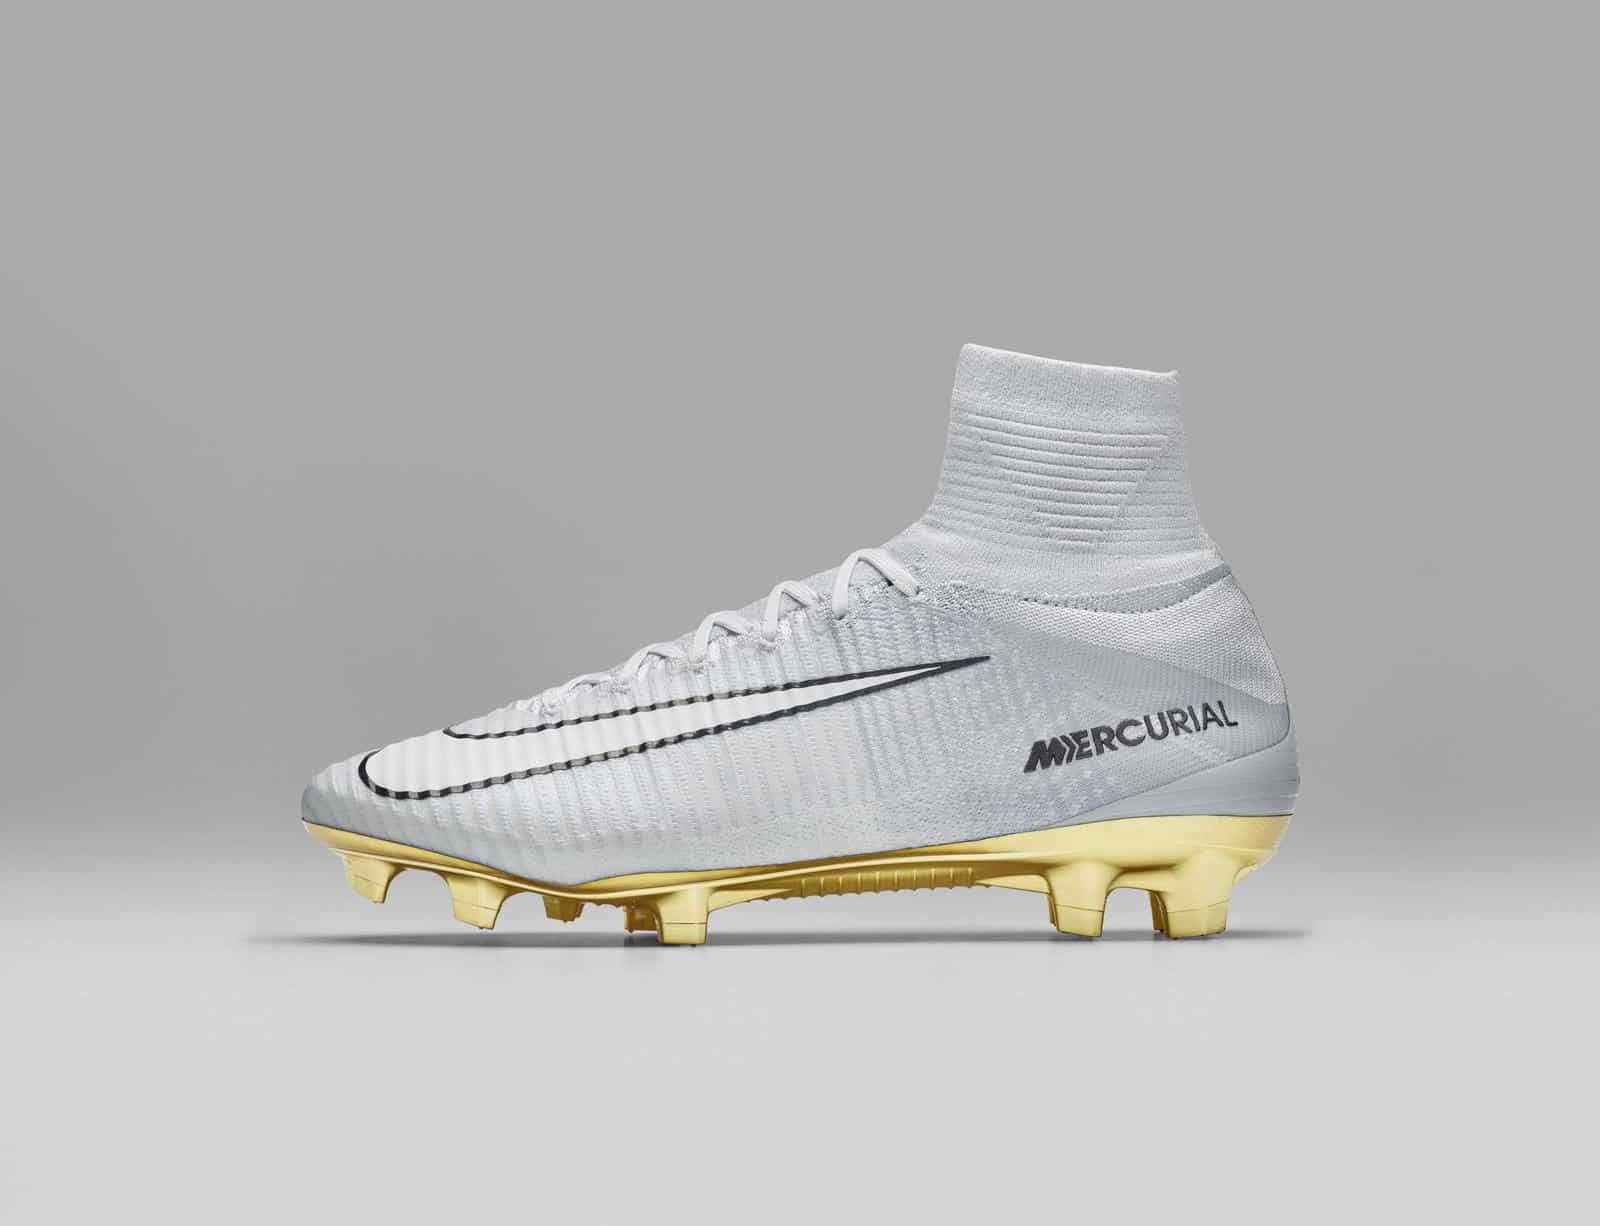 chaussure-foot-nike-mercurial-superfly-cr7-ballon-or-2016